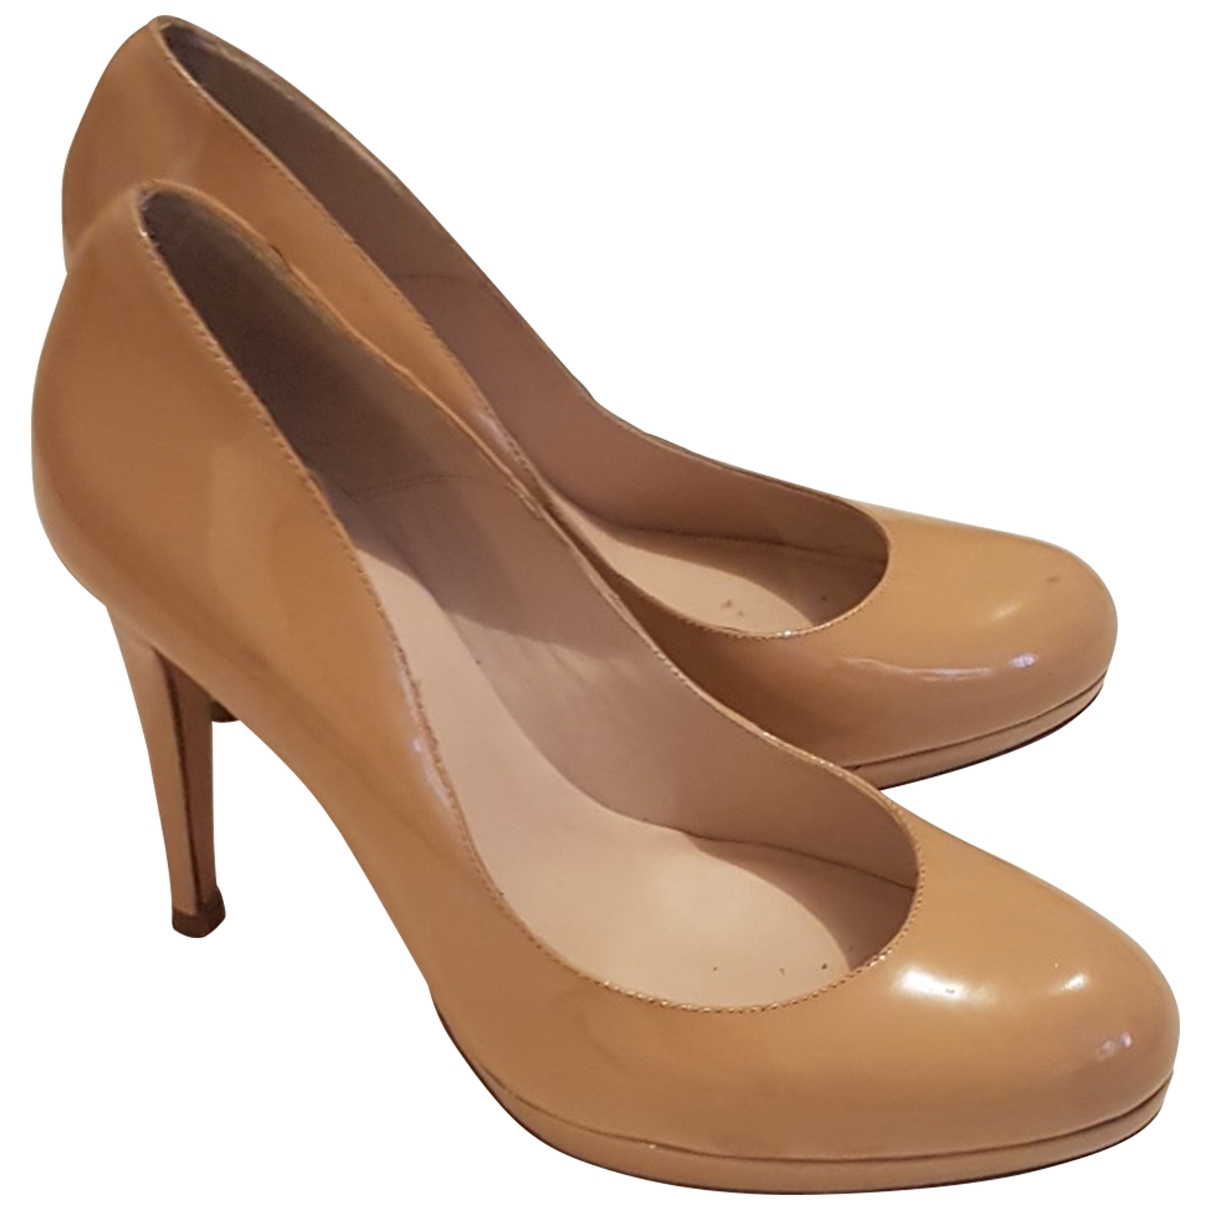 Lk Bennett \N Beige Patent leather Heels for Women 41 EU